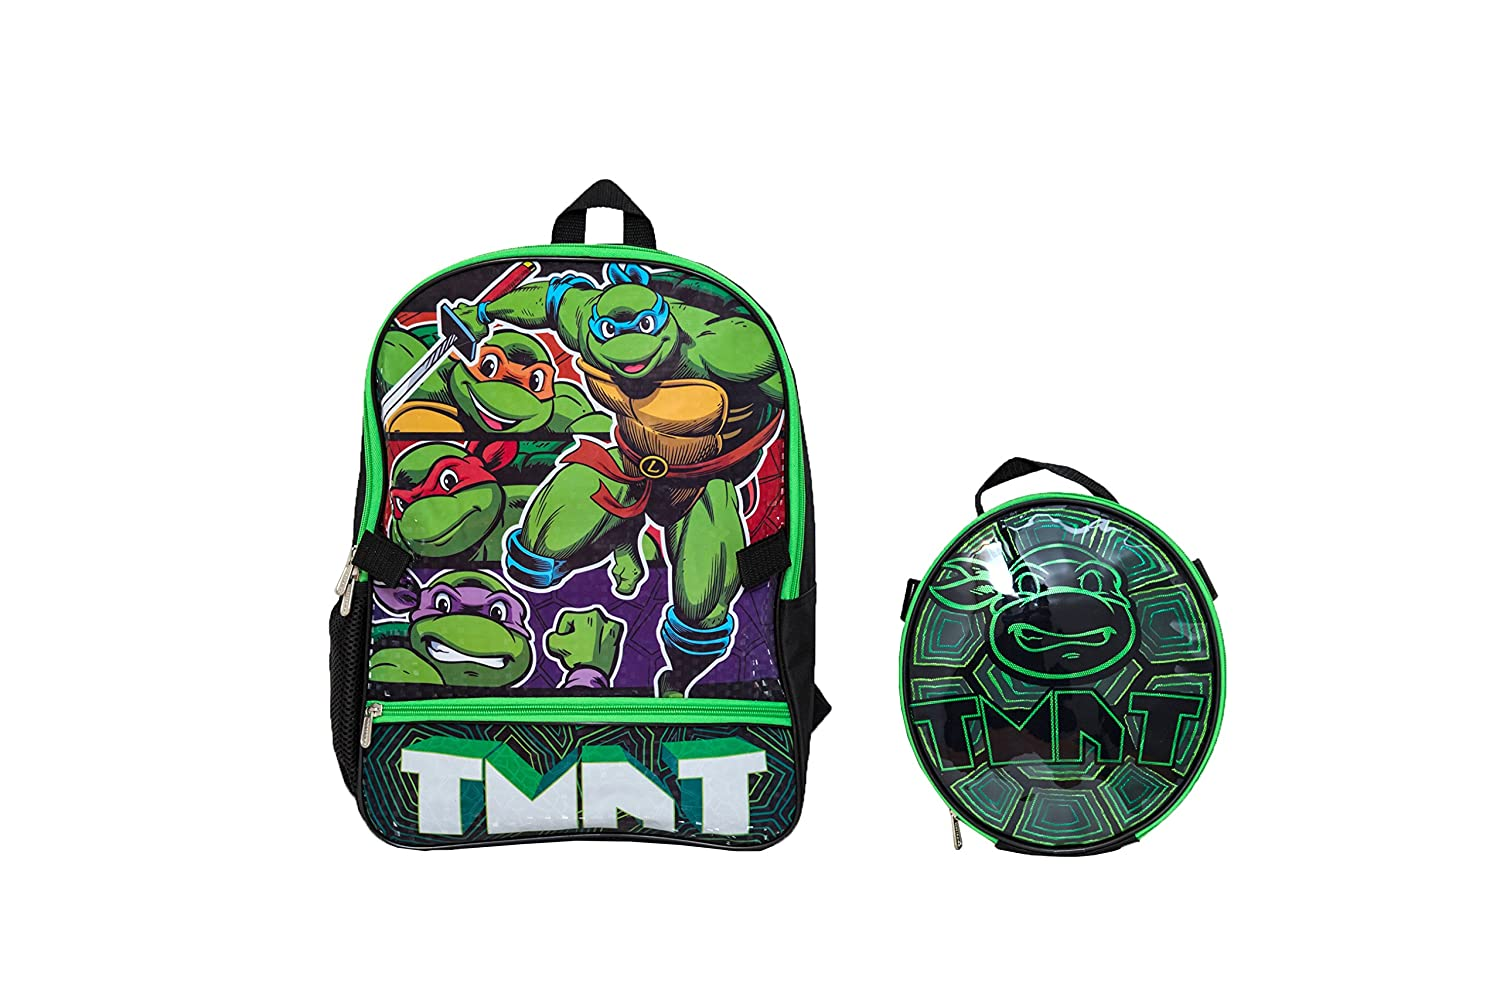 Nickelodeon Teenage Muant Ninja Turtles With Shaped Shell Lunch Kit Backpack